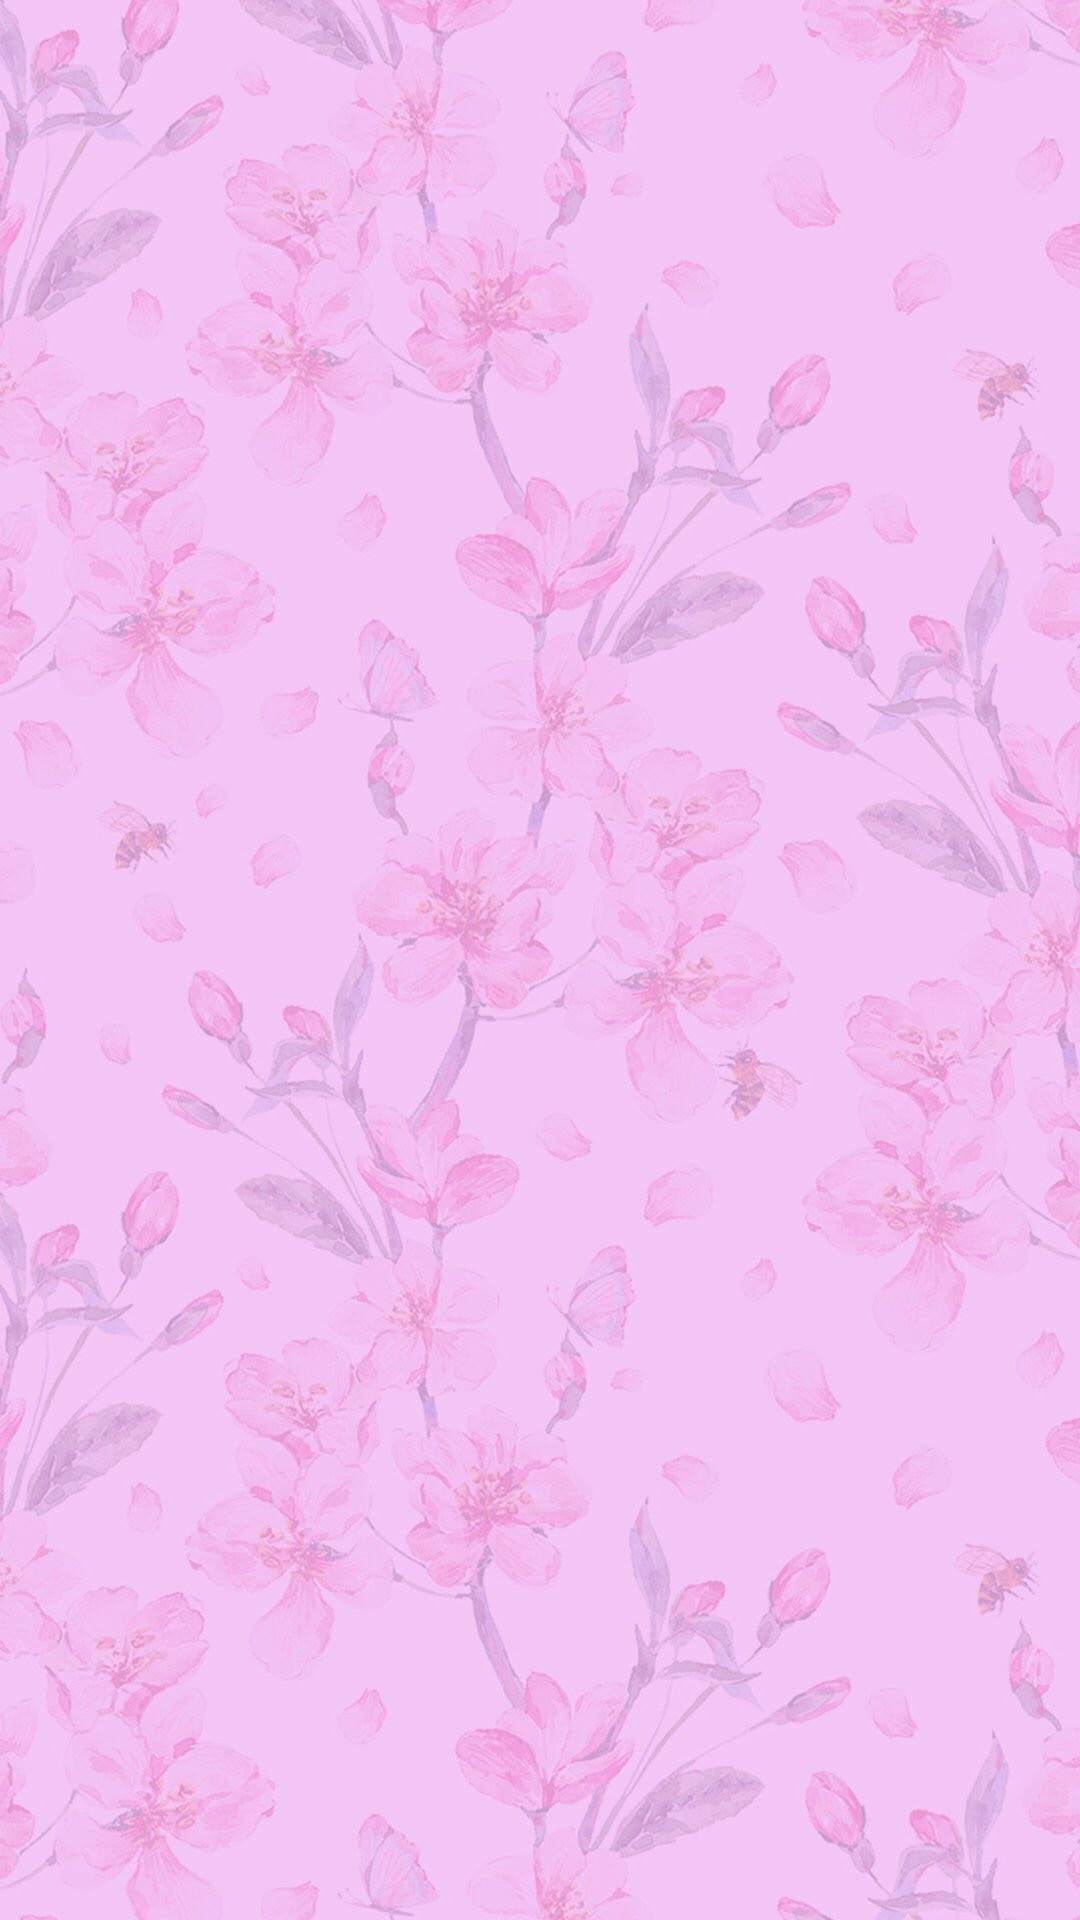 Cute Pink Glitter Wallpapers Girly Pink Wallpapers 72 Images